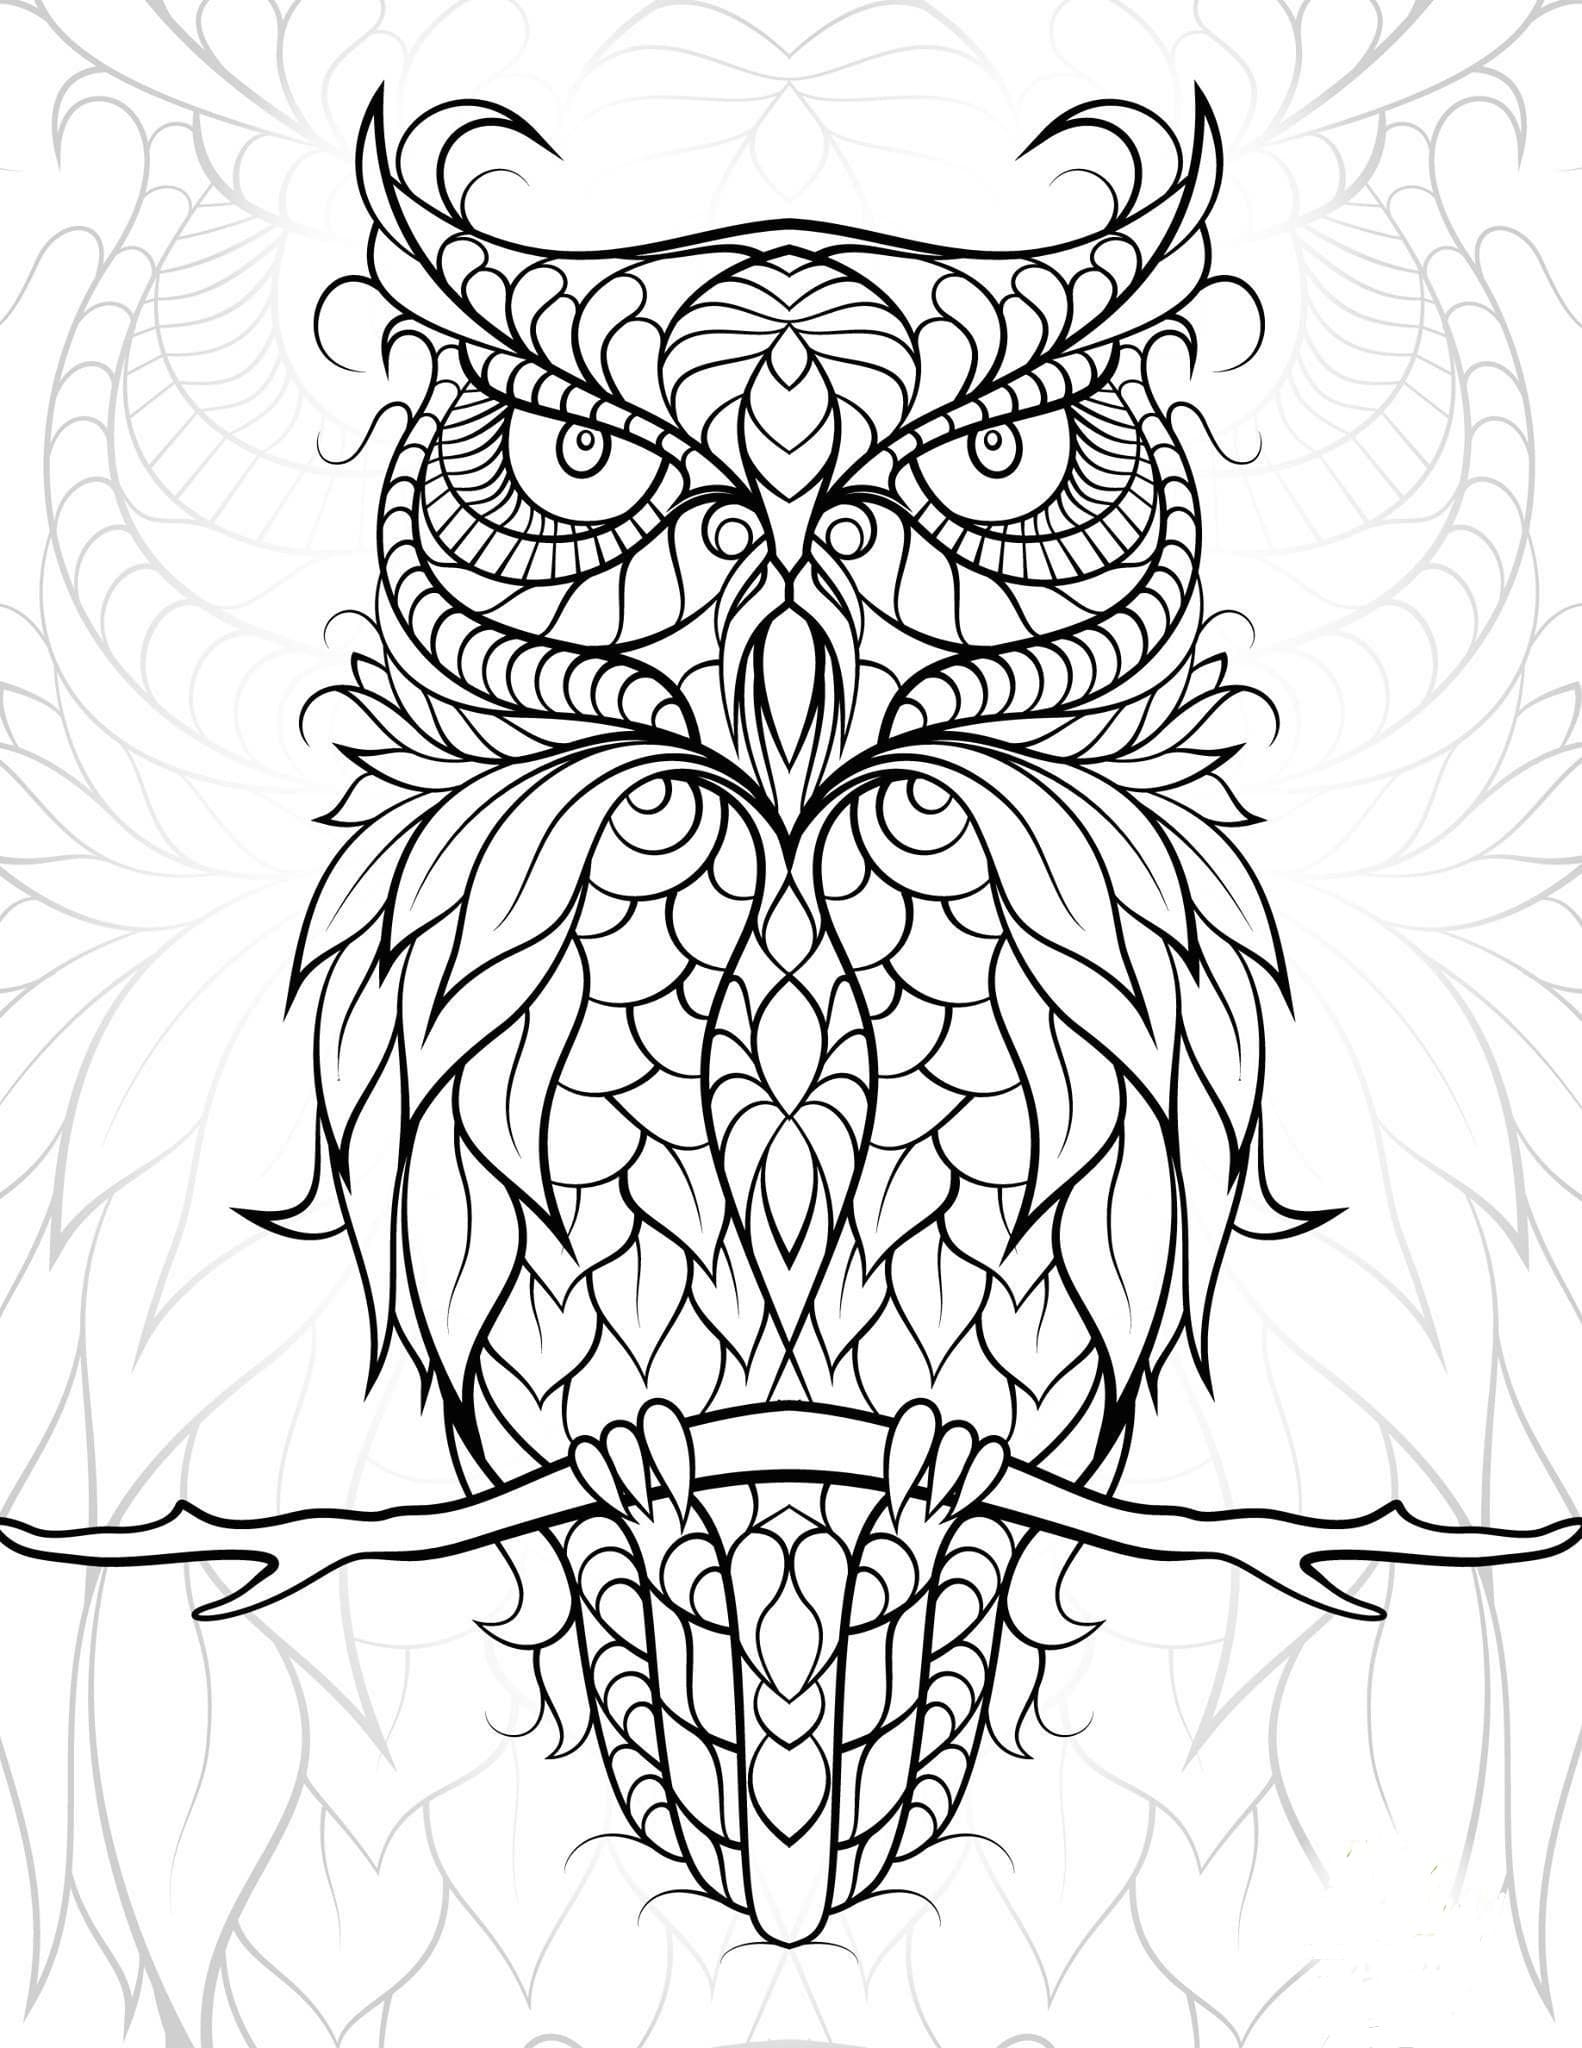 Coloring Pages For Adults All The Topics Print Them For Free